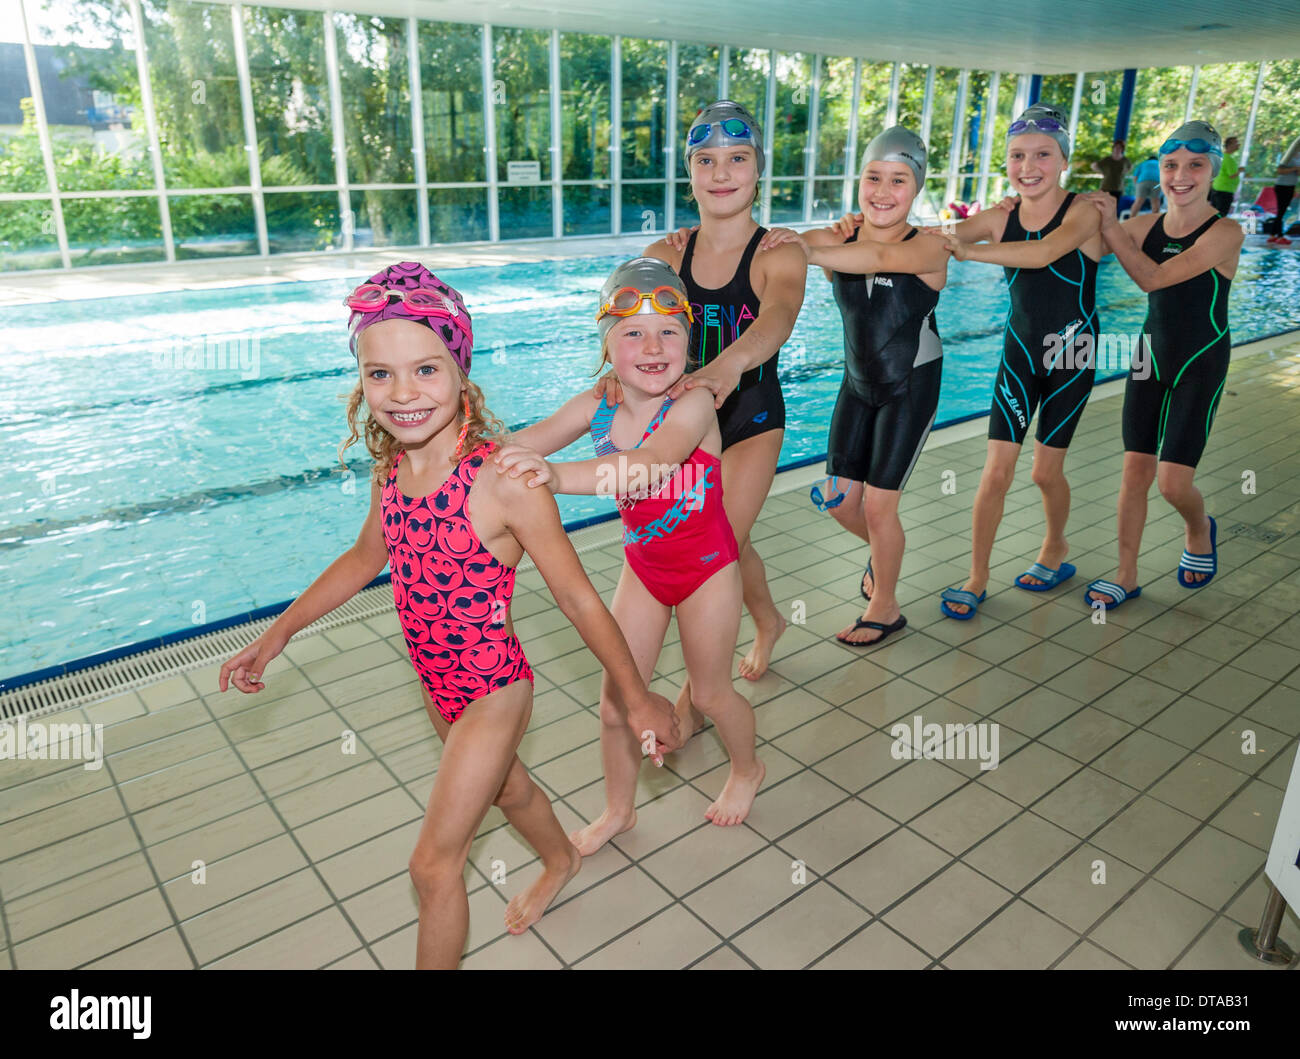 Young swimmers enjoy a polonaise at the pool during a pause in their swimming competition. - Stock Image